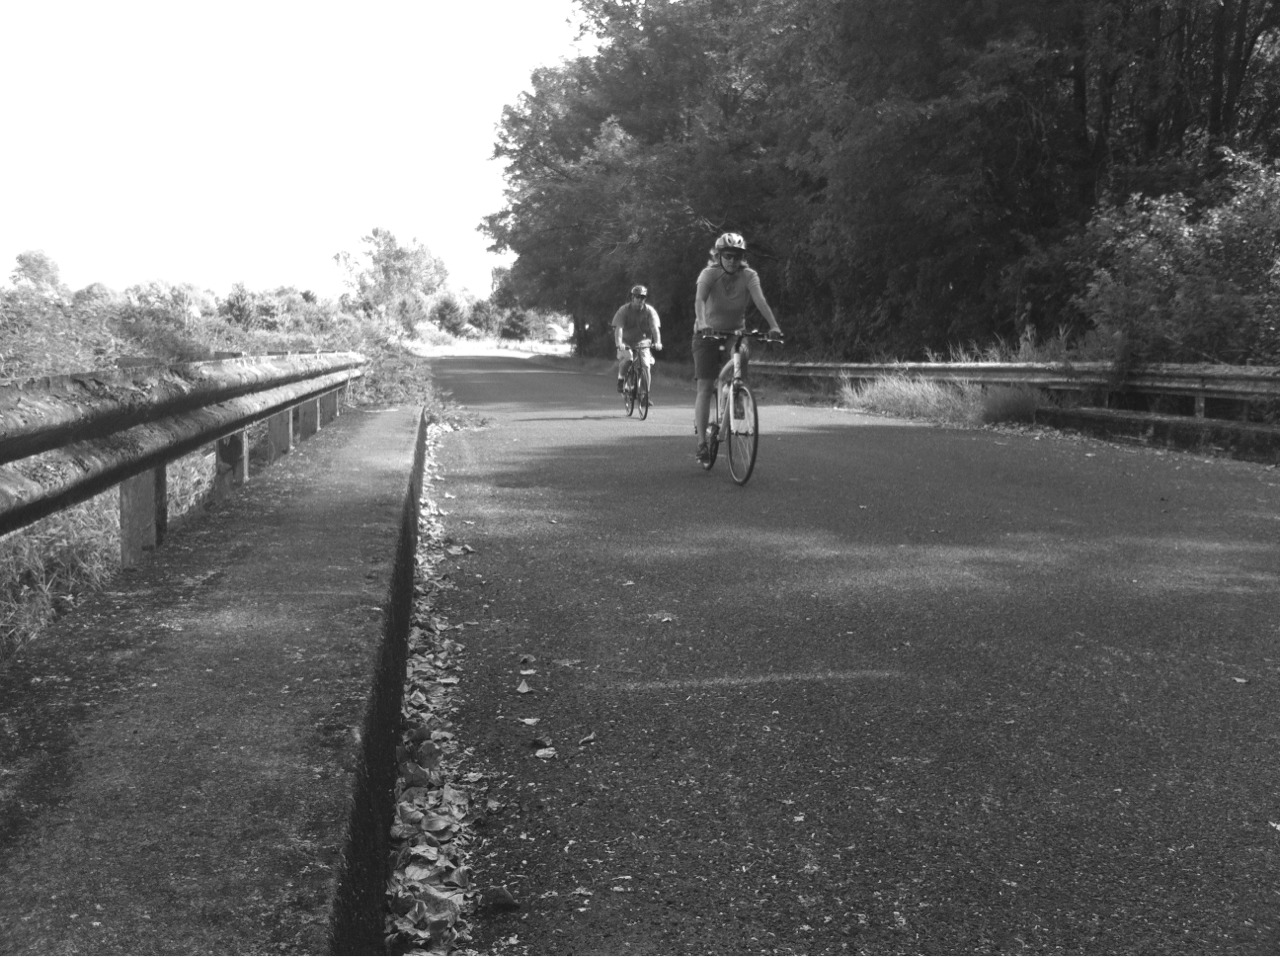 Bicyclists On The Green River Trail #hueless ©2012 Kent Kangley